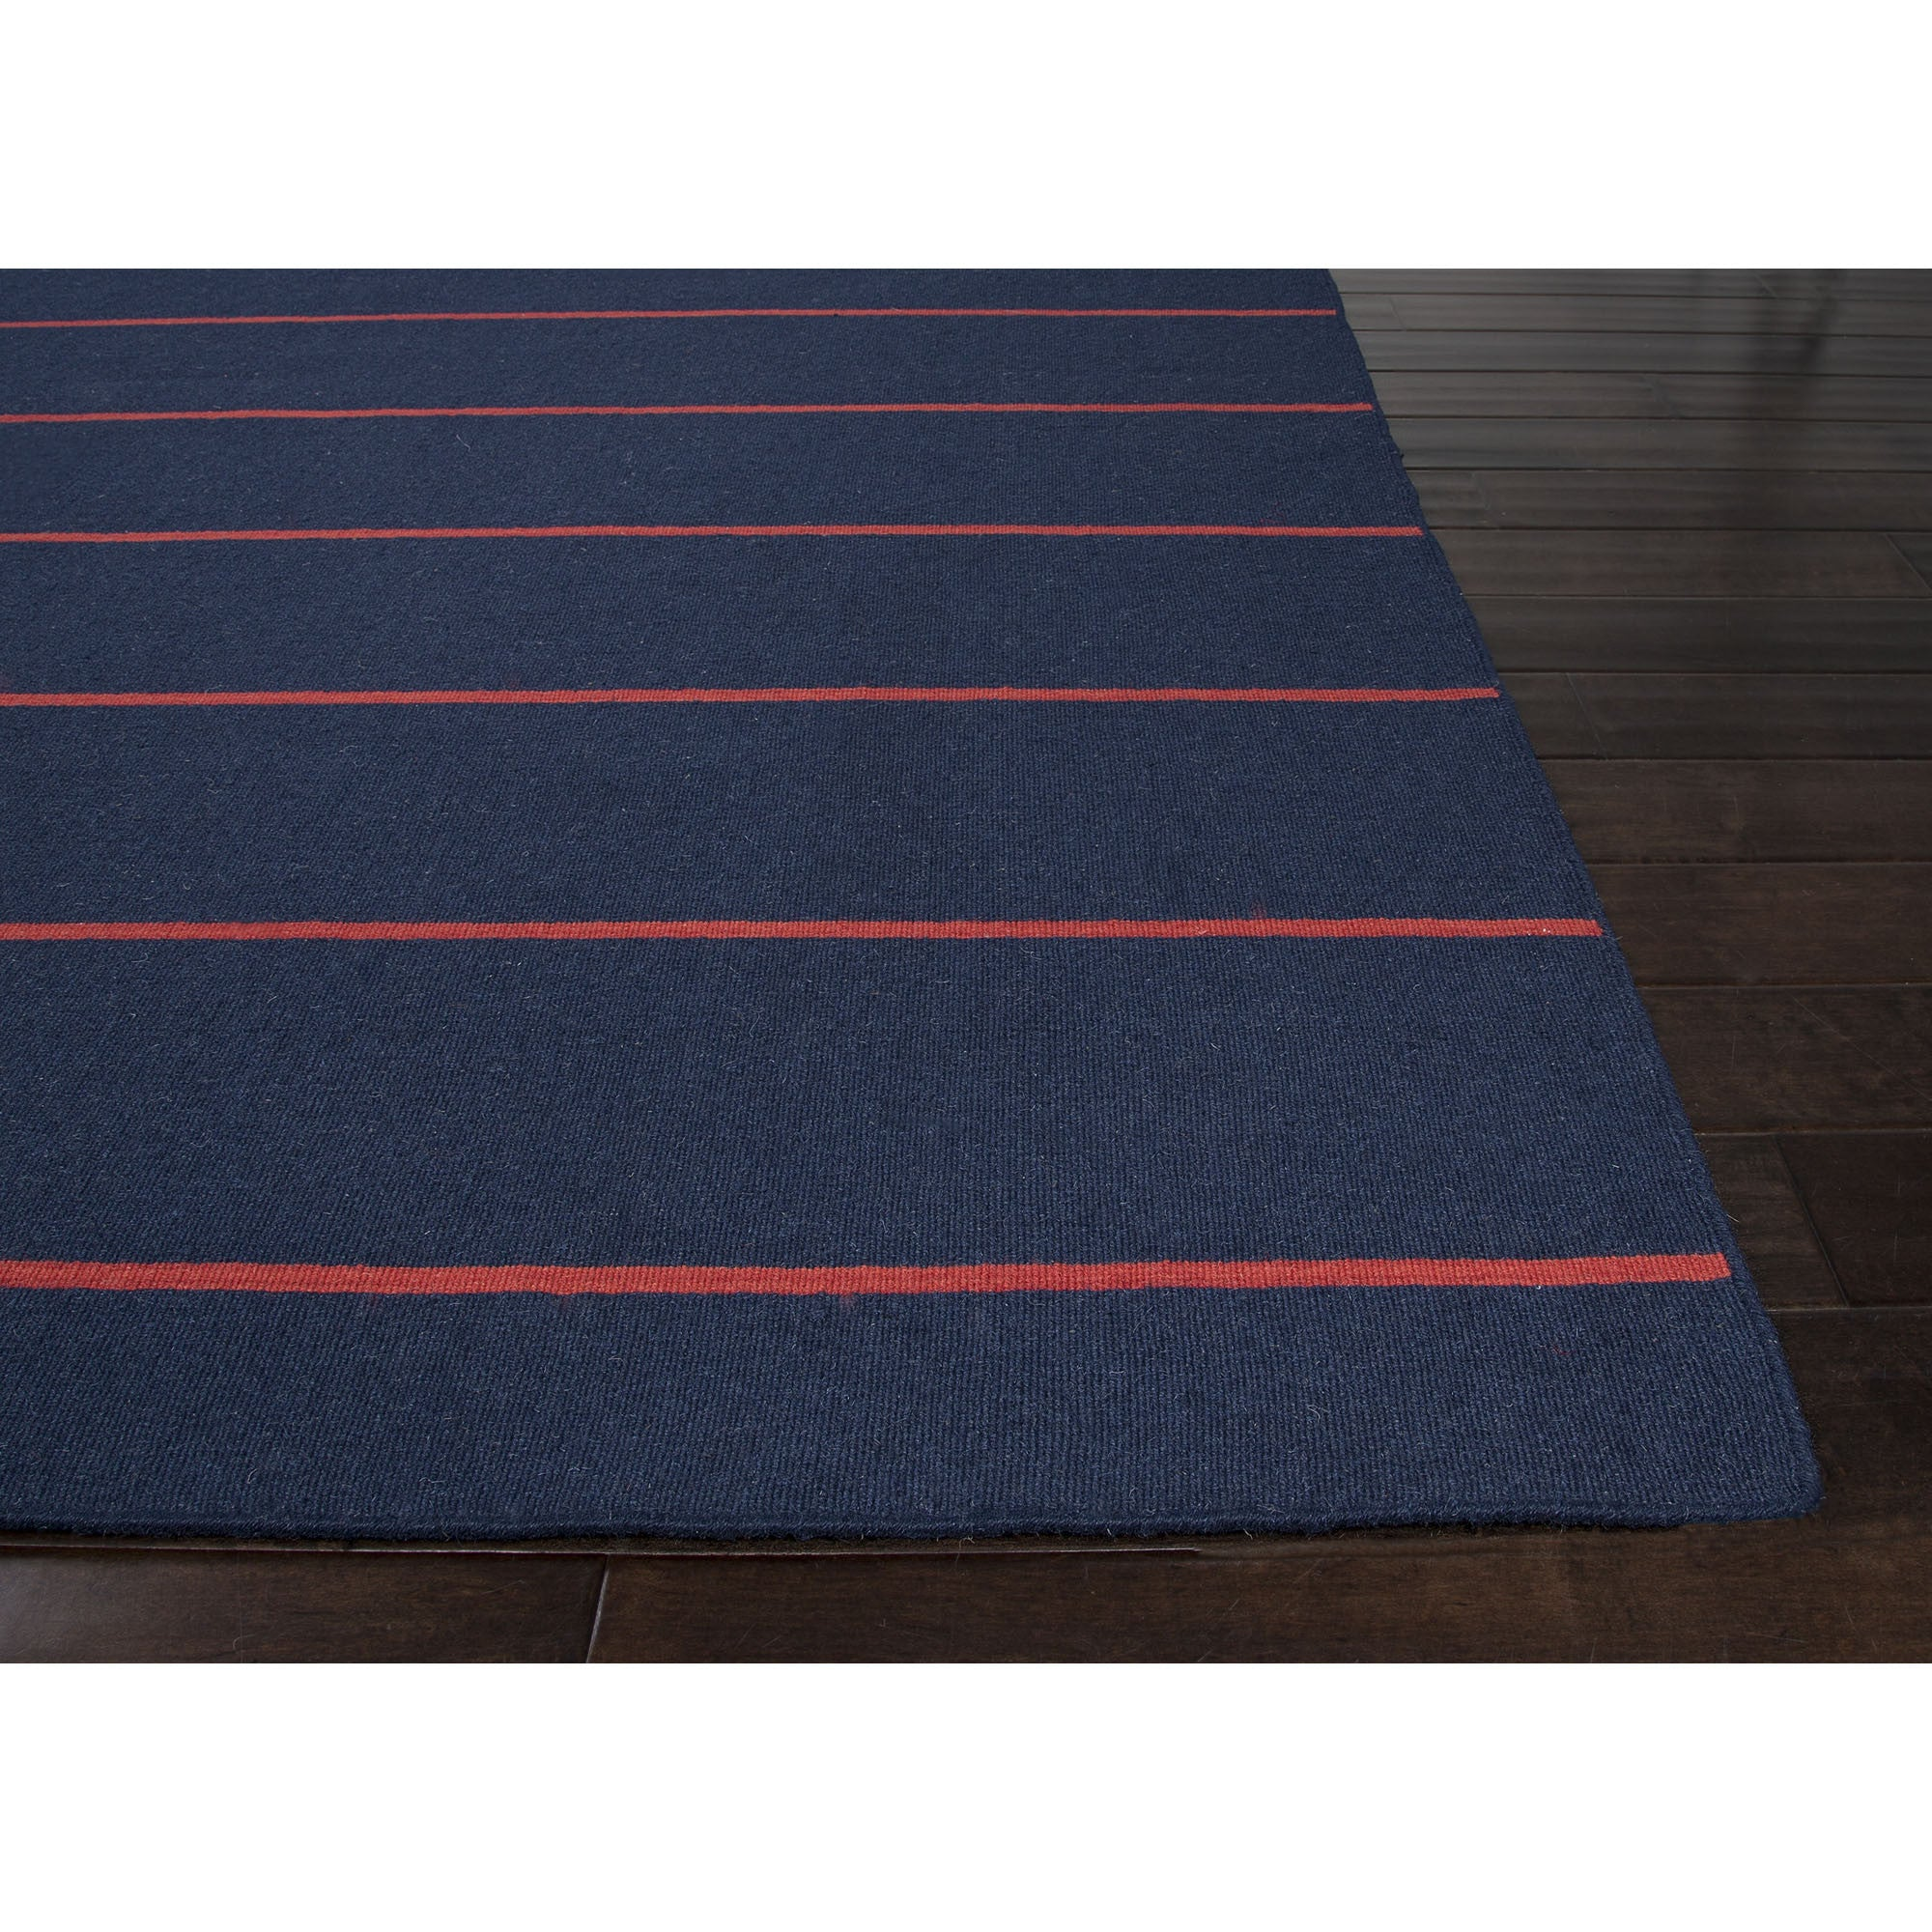 Jaipur Rugs Flatweave Stripe Pattern Blue Red Wool Area